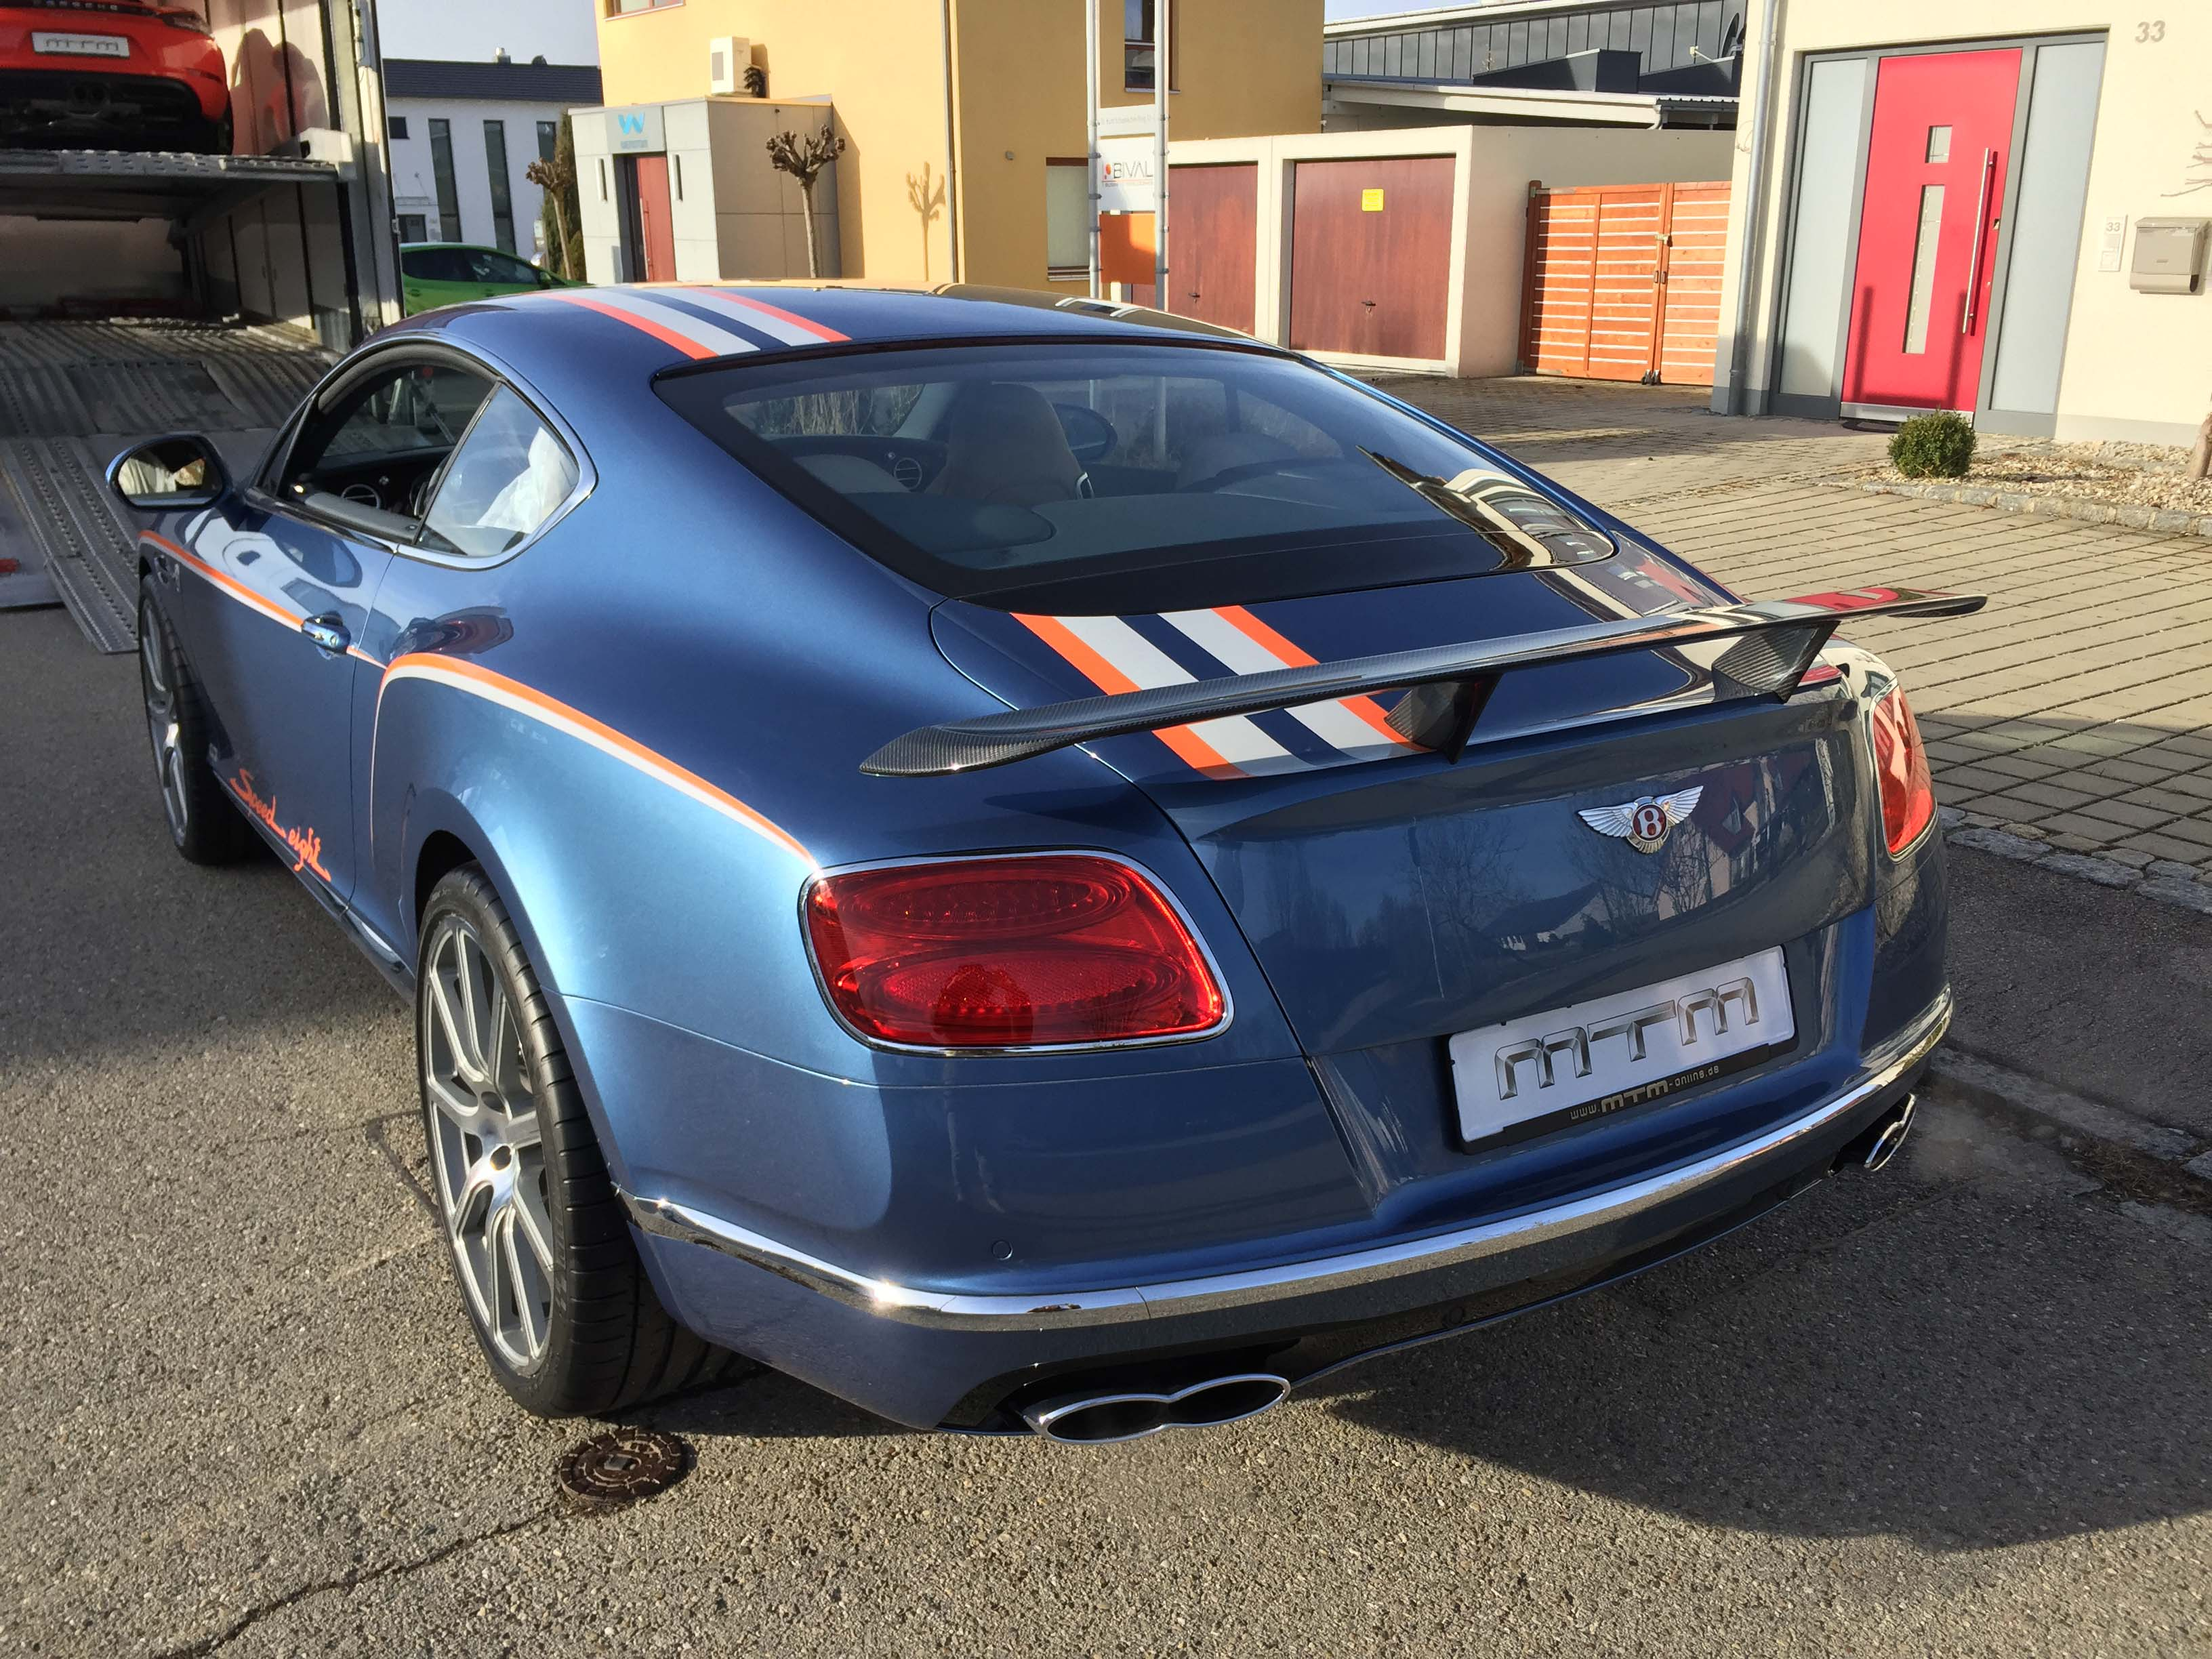 mtm-bentley-gt-birkin-edition-speed-eight-design-carwrap_1